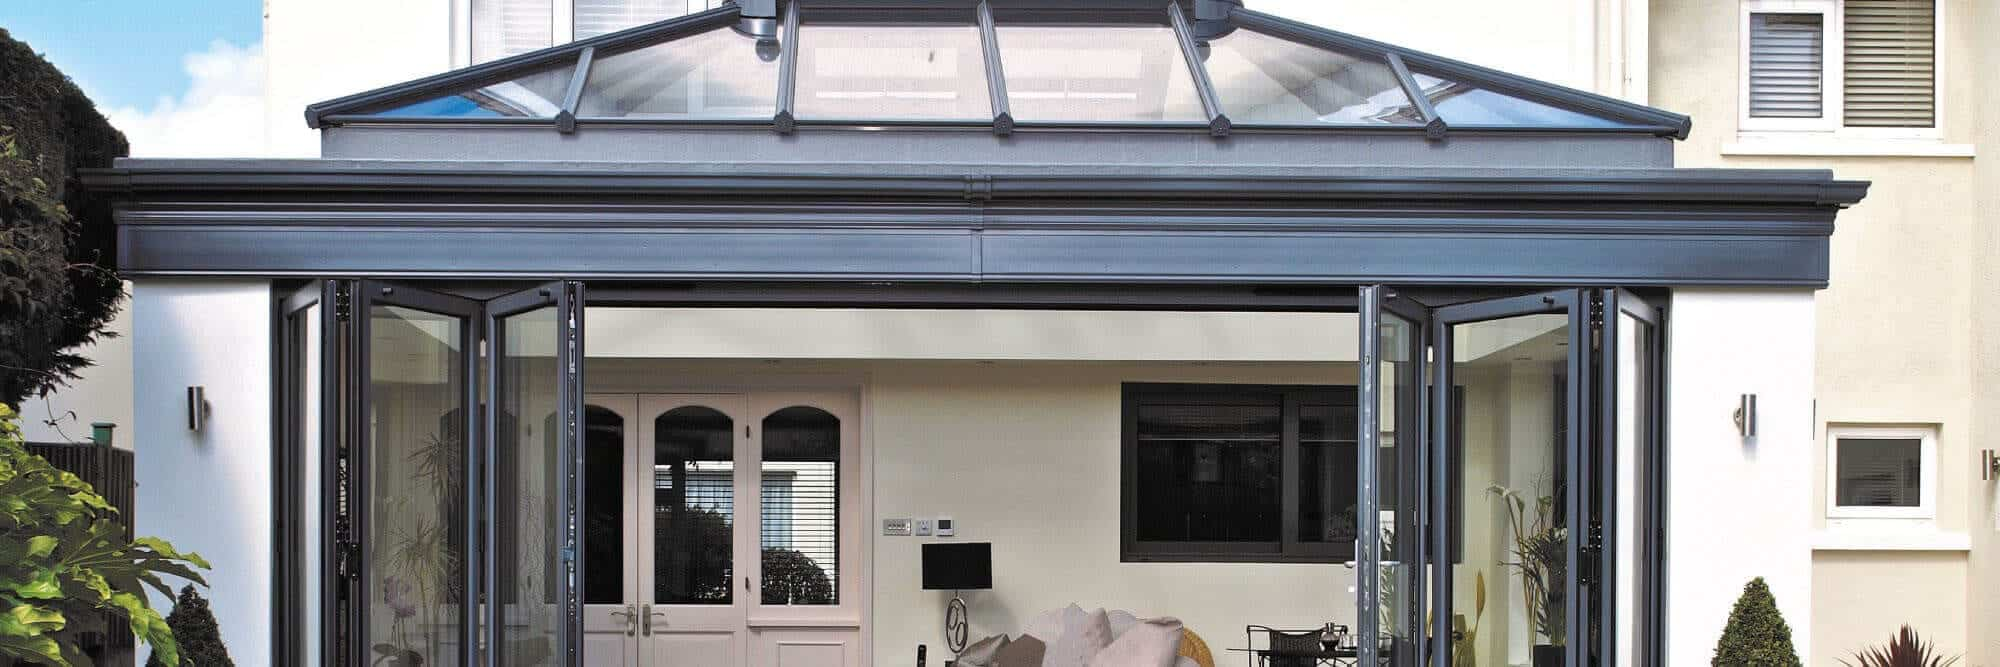 Orangeries & Conservatories Cardiff